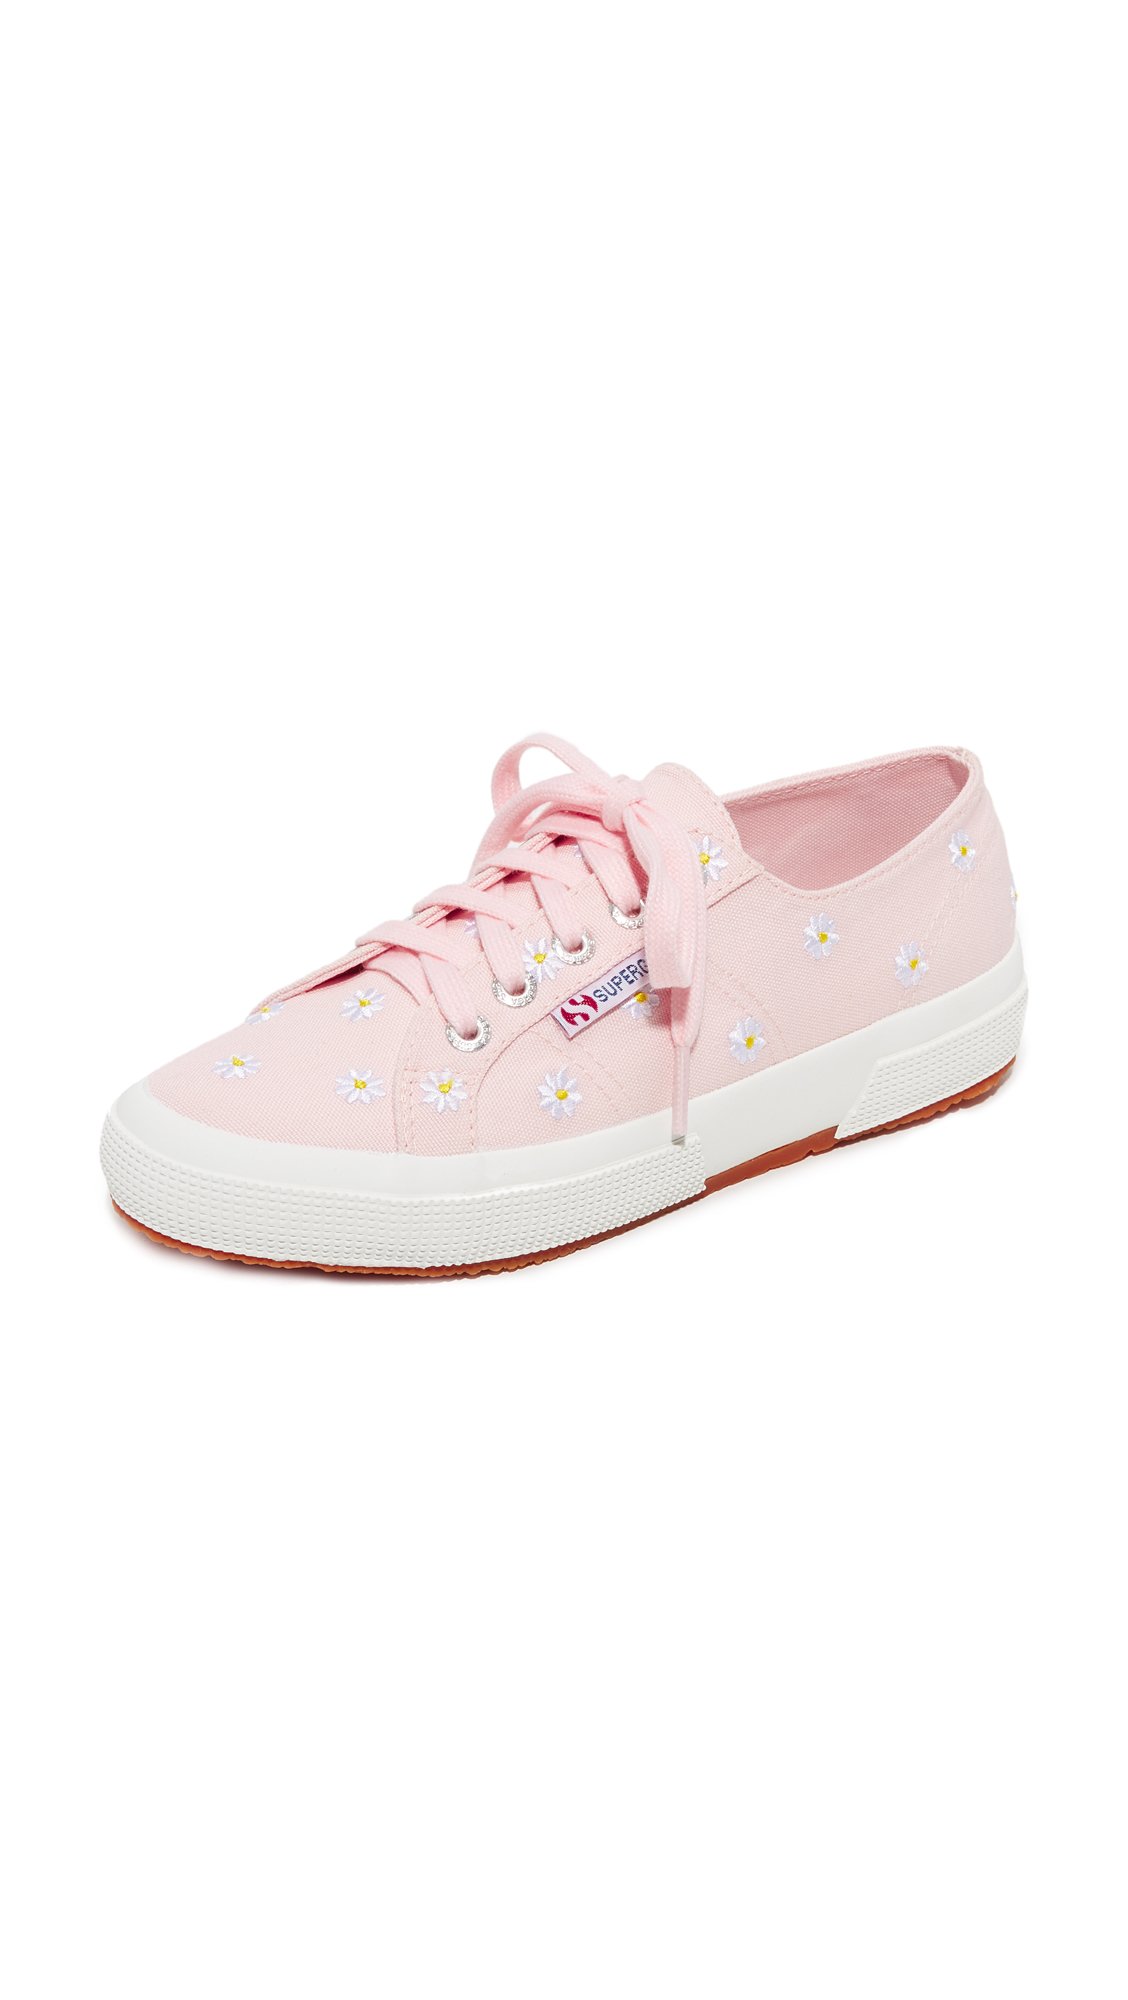 Superga 2750 Embroidered Cotu Sneakers - Pink Daisies